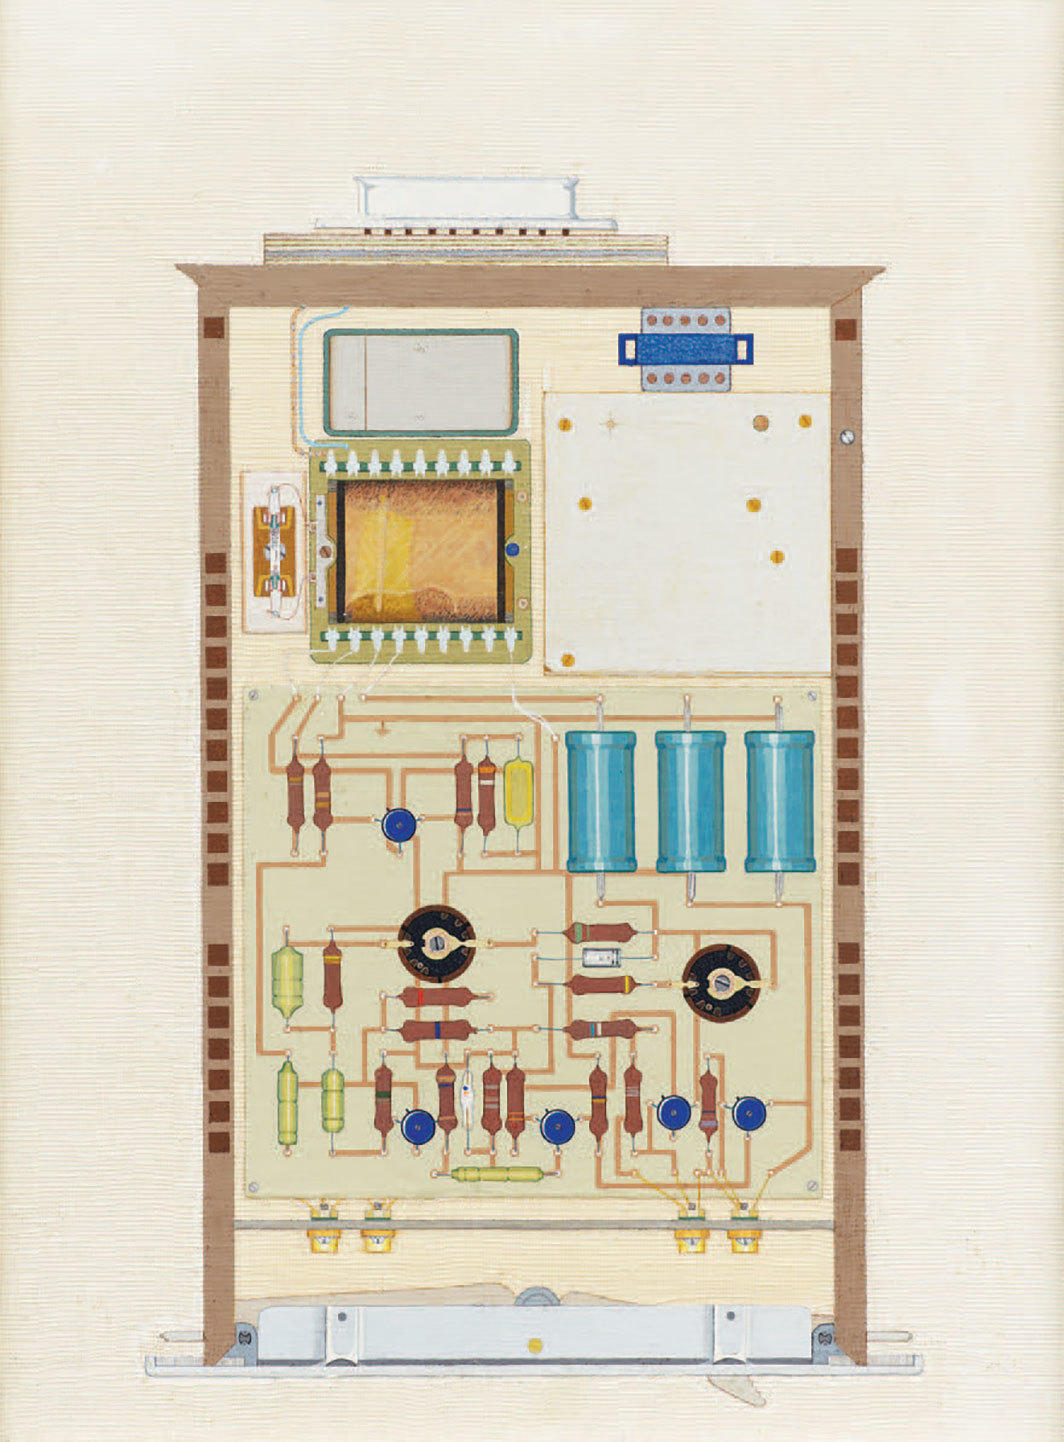 "Ulla Wiggen, Förstärkare (Amplifier), 1964, gouache on wooden panel and gauze, 13 3⁄4 × 9 7⁄8""."